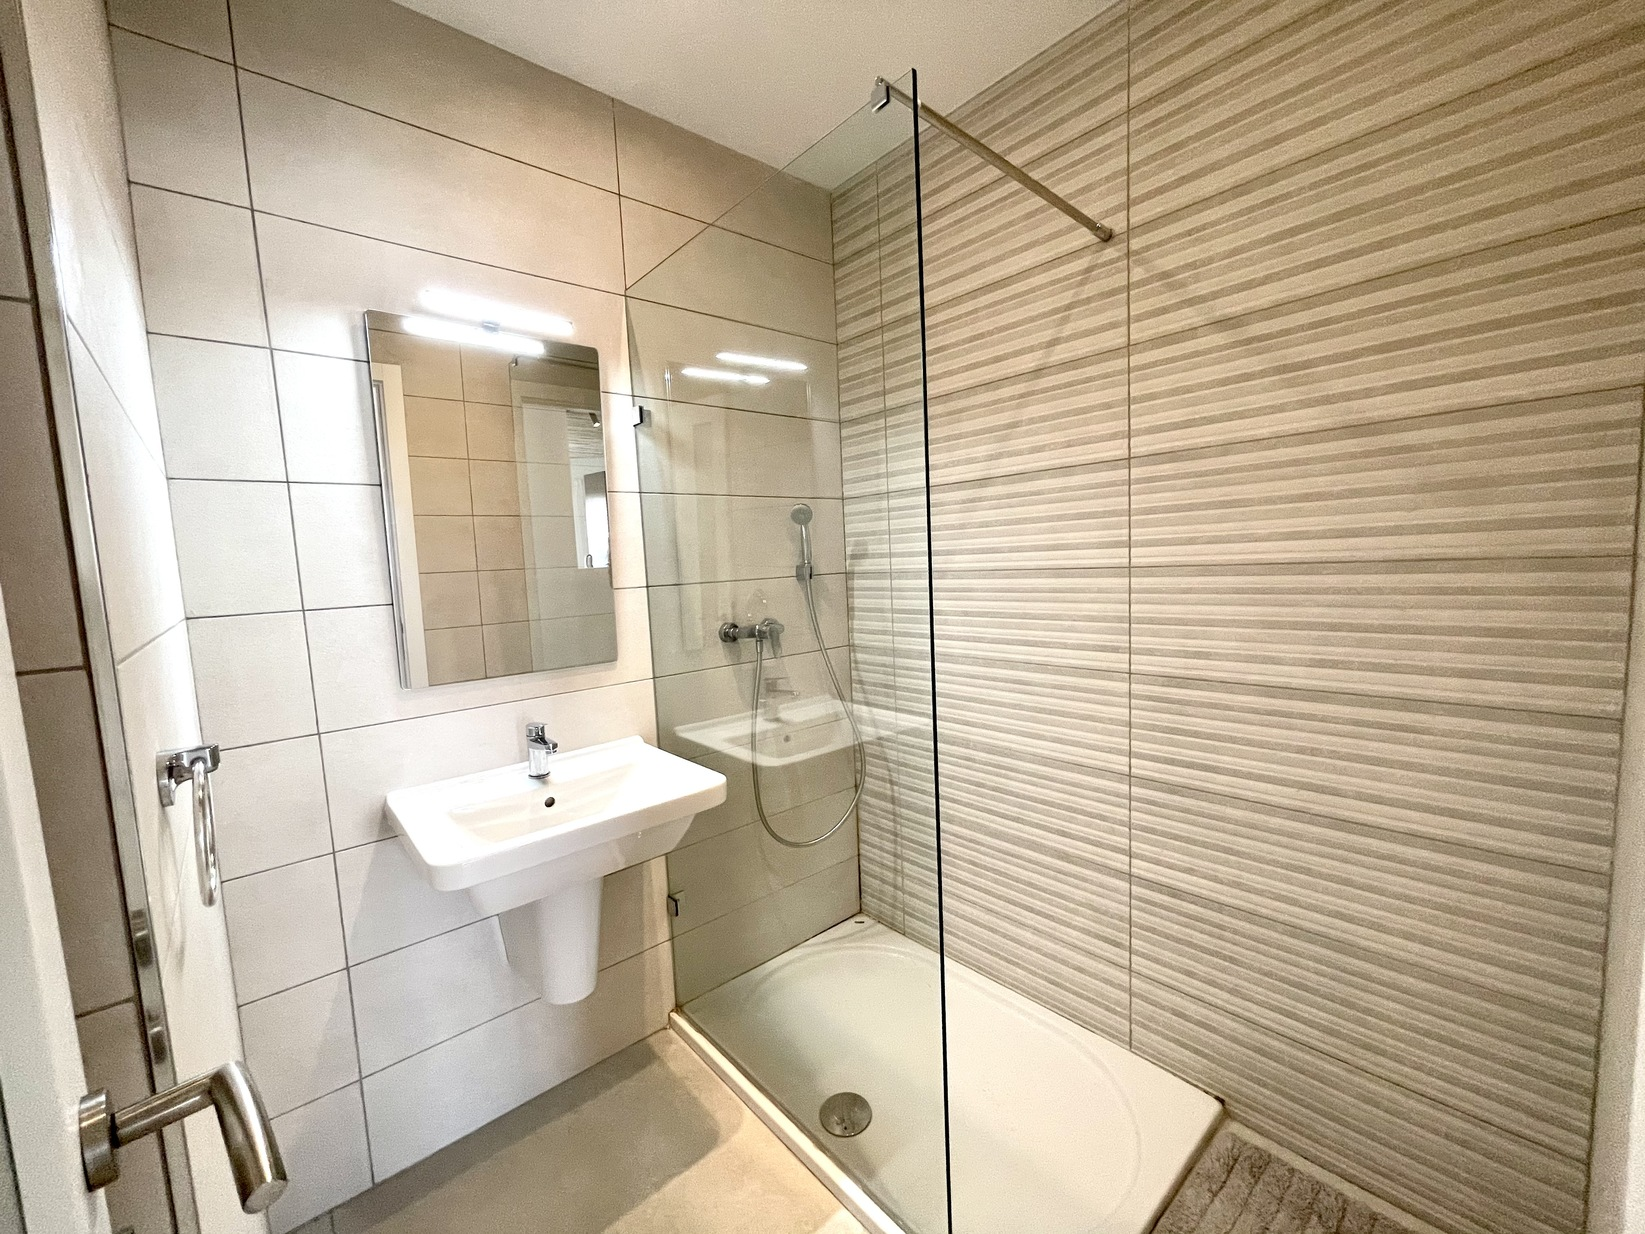 4 bed Apartment For Rent in Swieqi, Swieqi - thumb 12